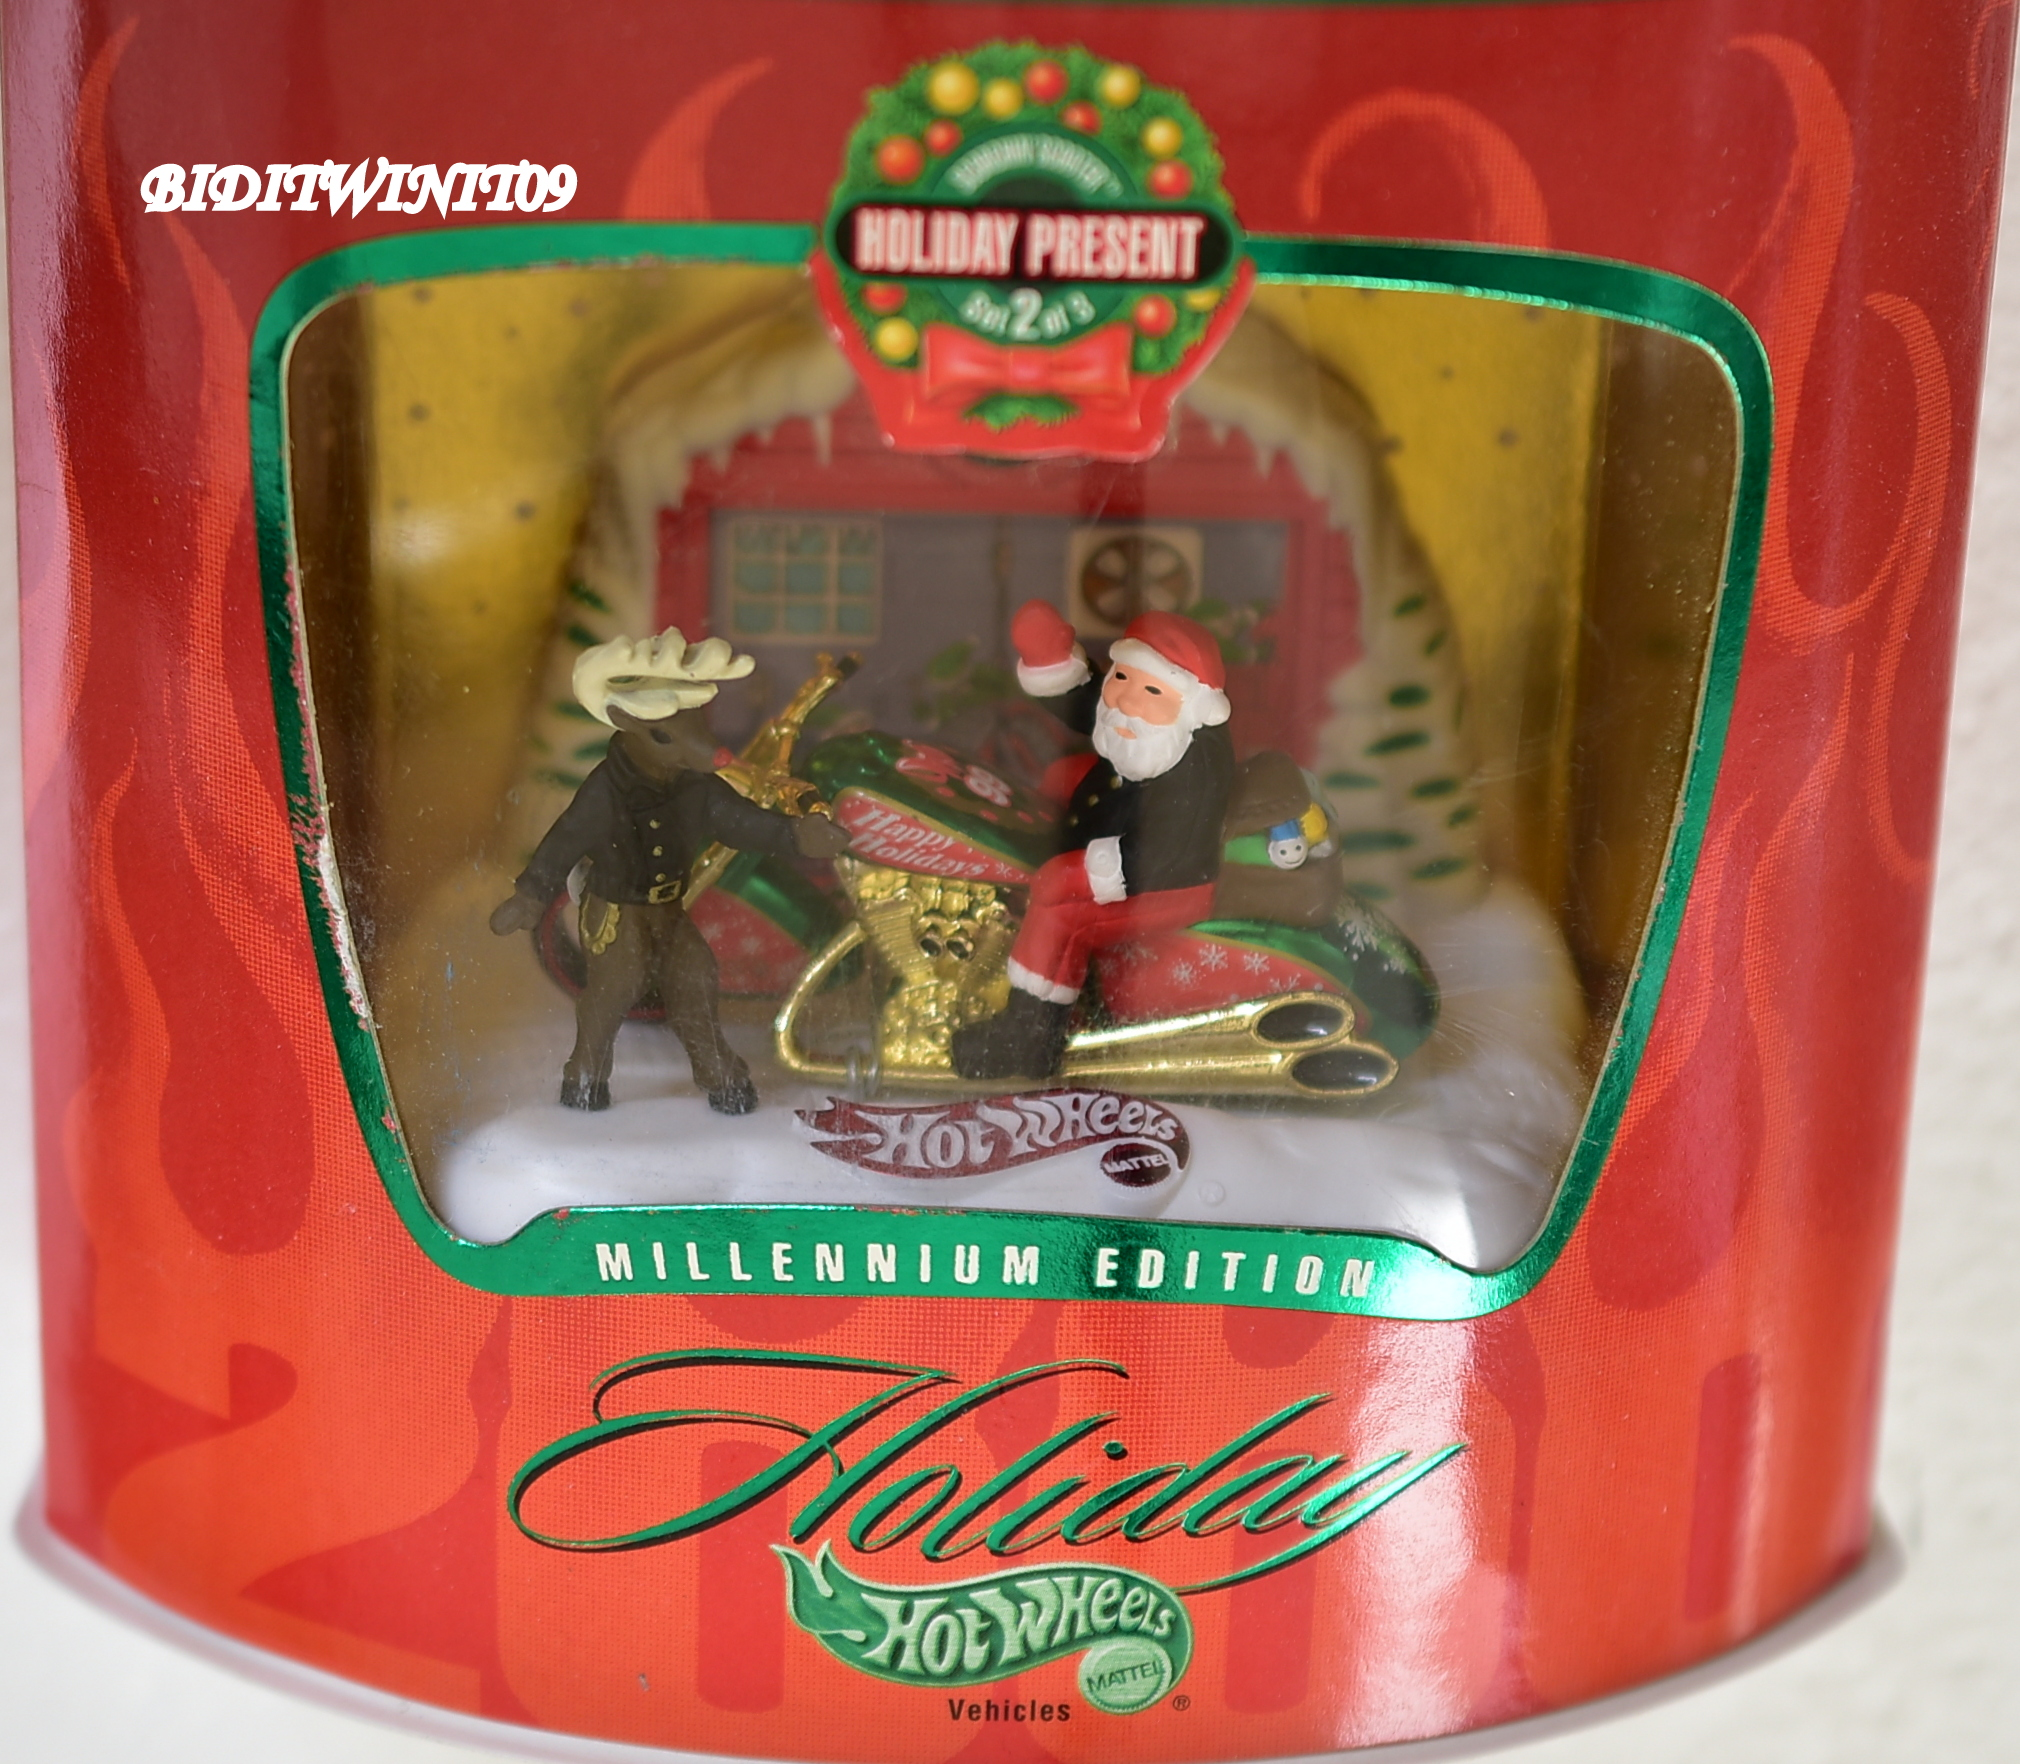 HOT WHEELS HOLIDAY PRESENT MLLENNIUM EDITION SCORCHIN SCOOTER E+